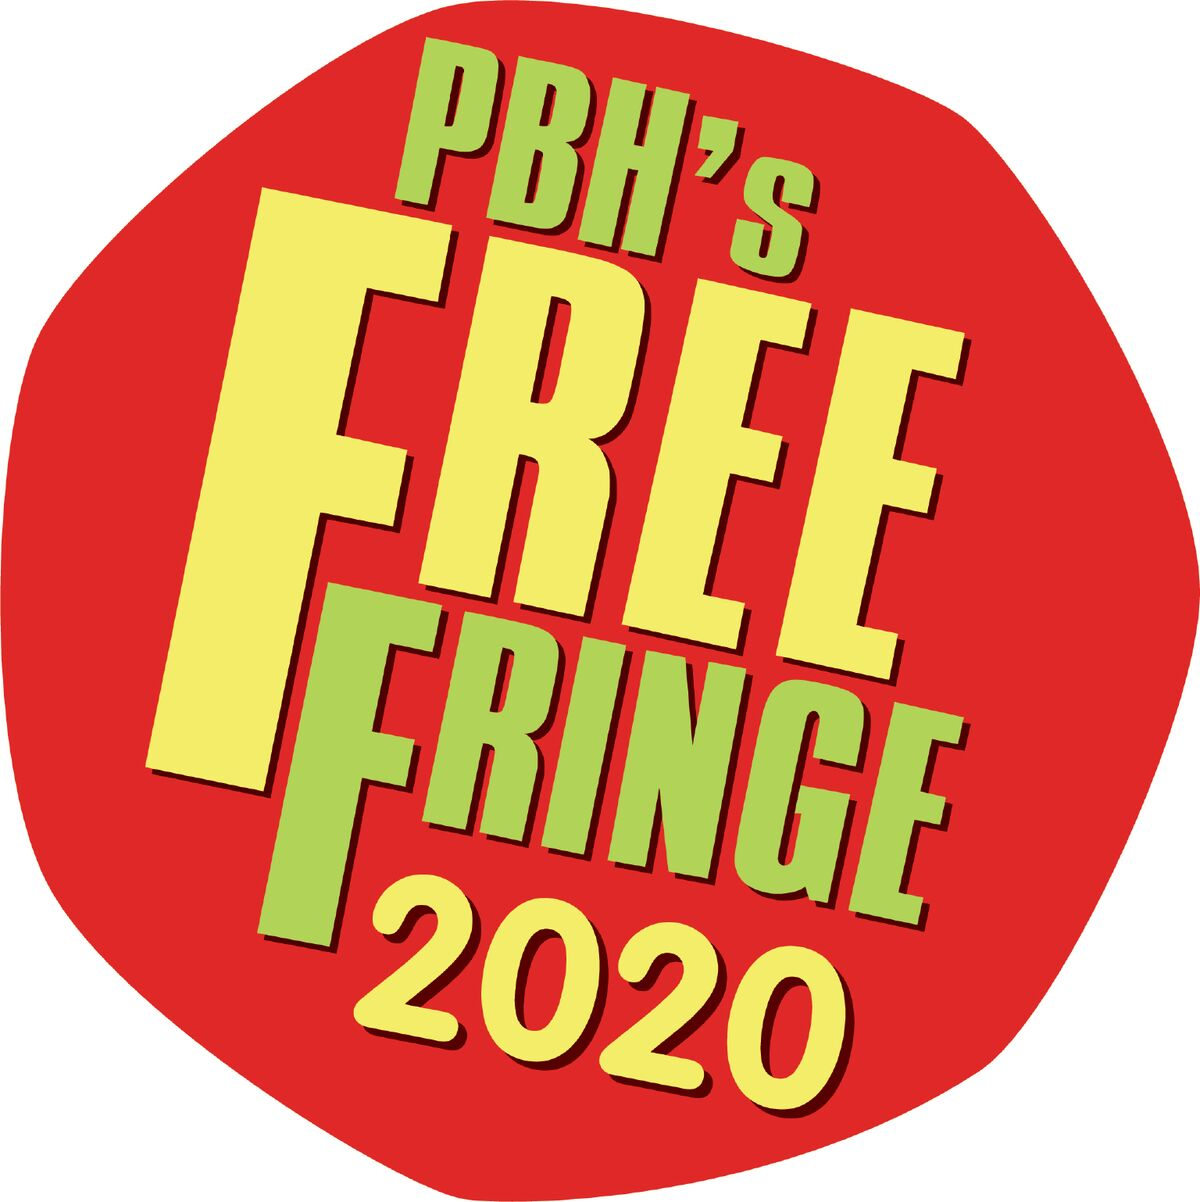 PBH's Free Fringe at The Voodoo Rooms